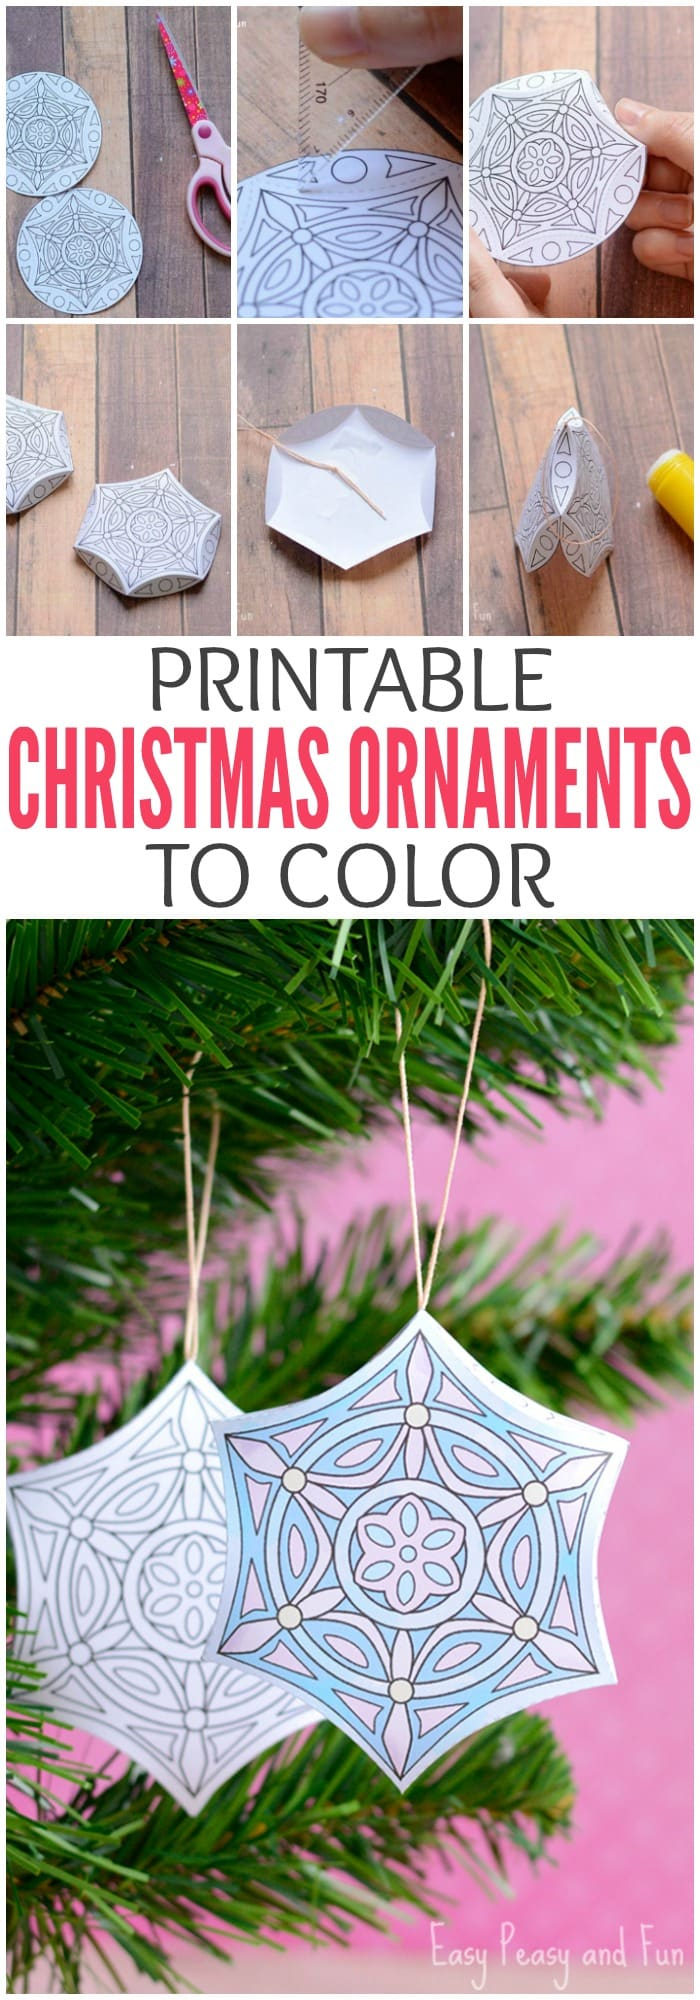 Printable Christmas Ornaments.Printable Christmas Ornaments To Color Easy Peasy And Fun